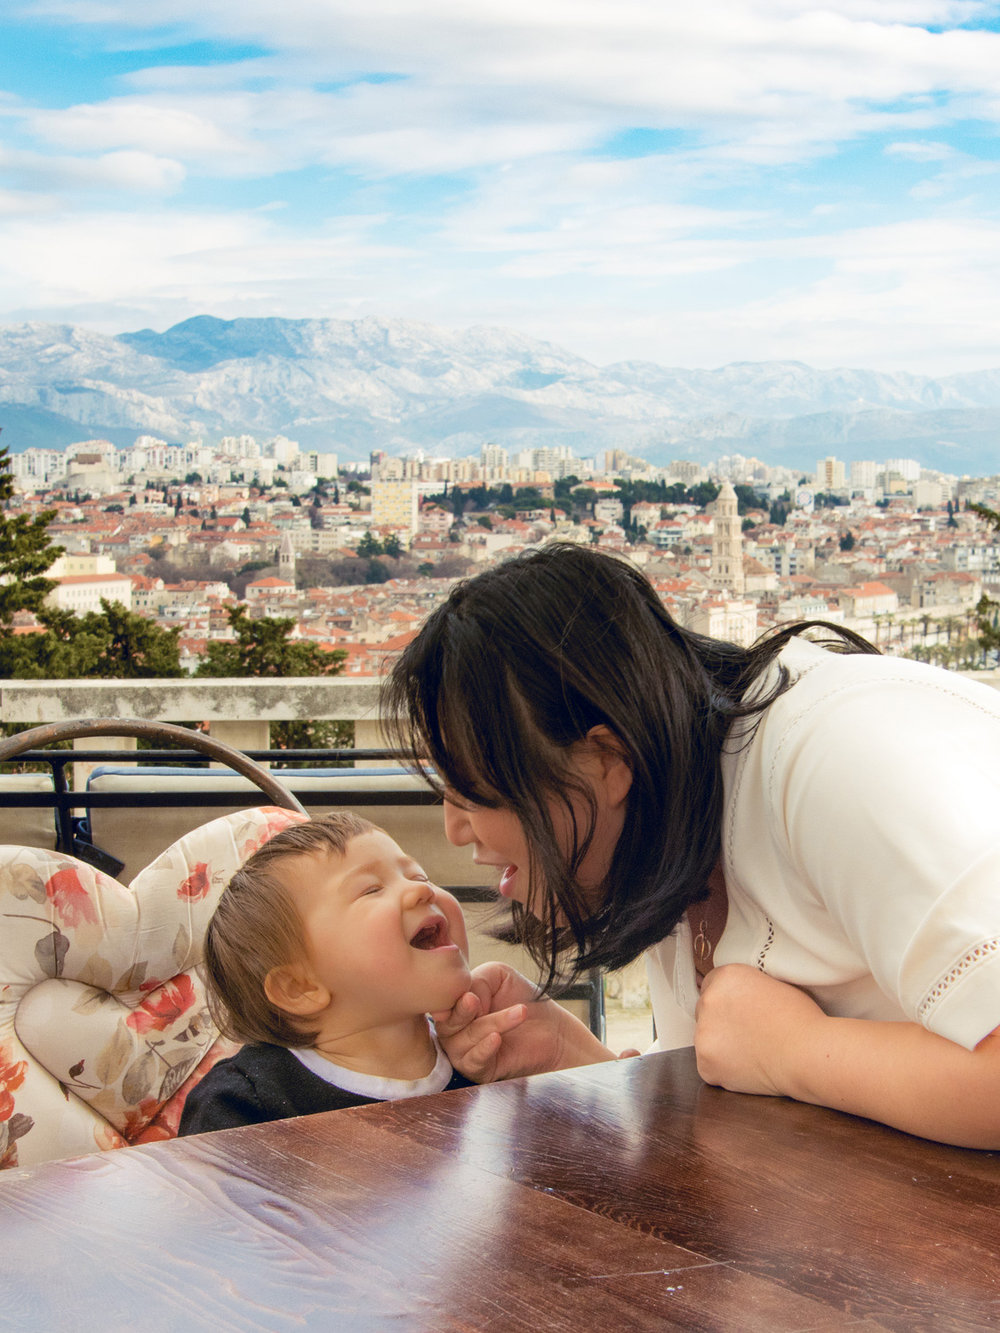 Enjoying family times and great views of Split Croatia at Vidilica Cafe.